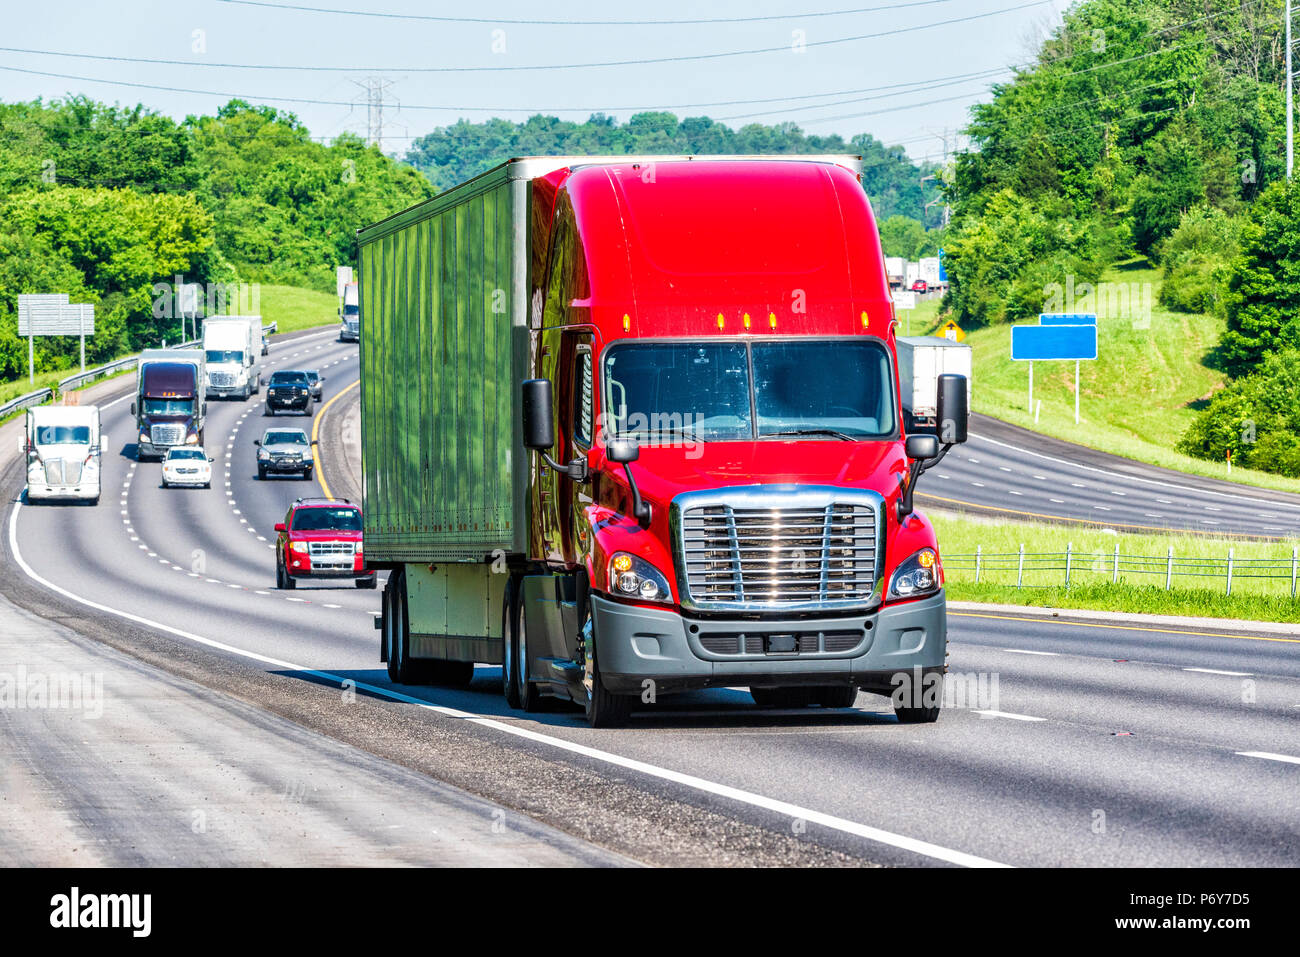 A red 18-wheeler leads other traffic down the interstate. Image shot on hot day. Heat waves from asphalt create distortion, especially on vehicles far - Stock Image